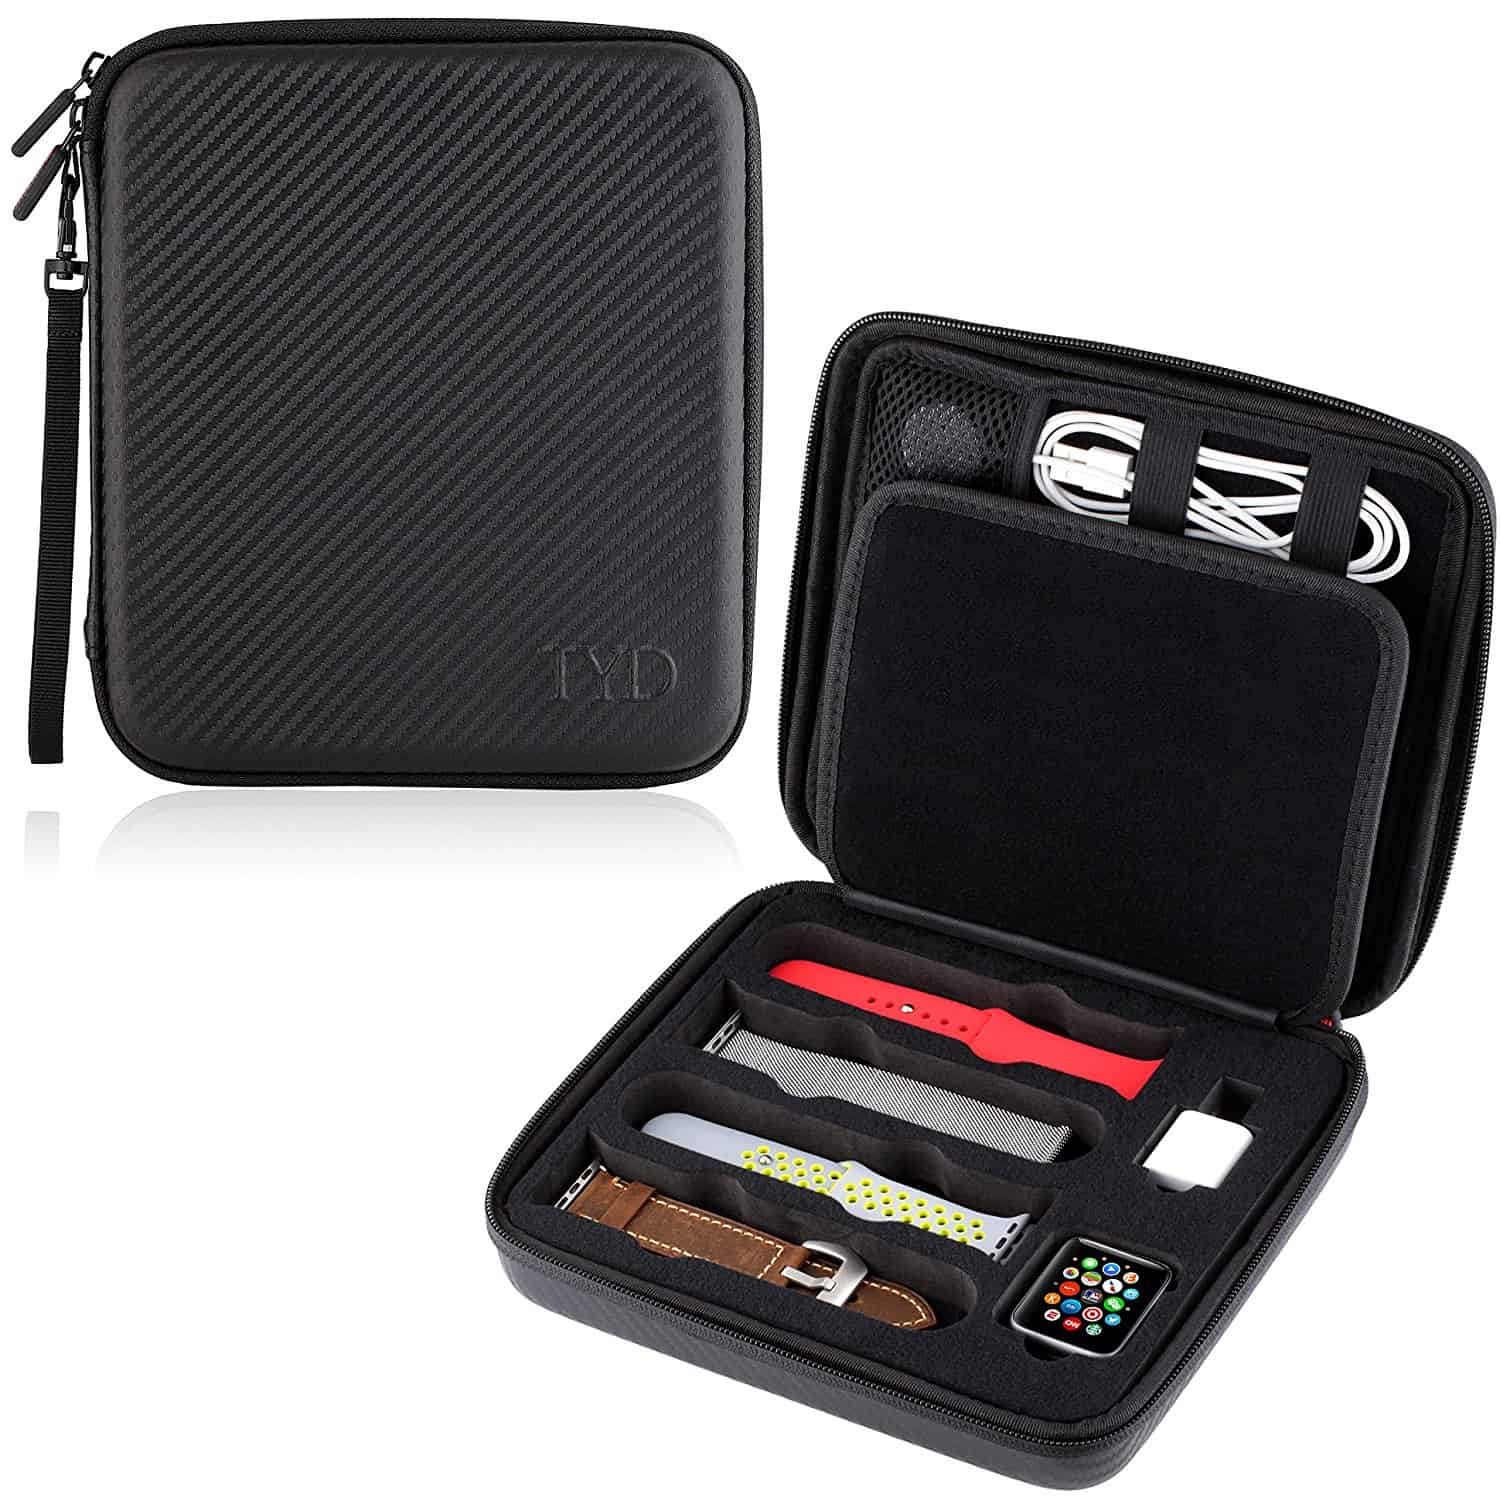 TYD accessory case